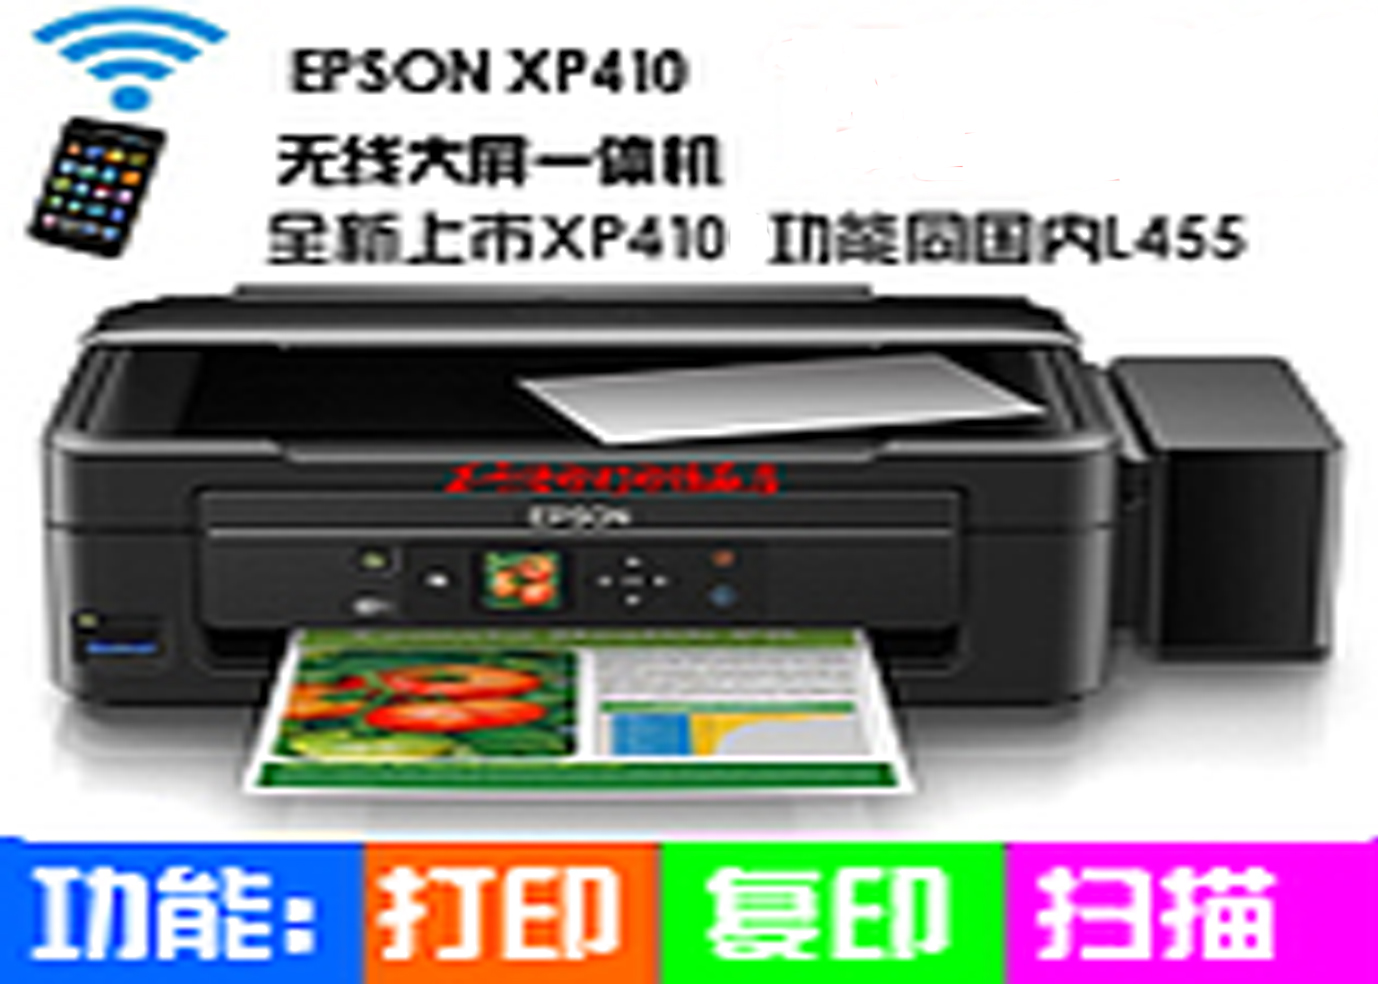 Epson EPSON XP-410 wireless color jet printer